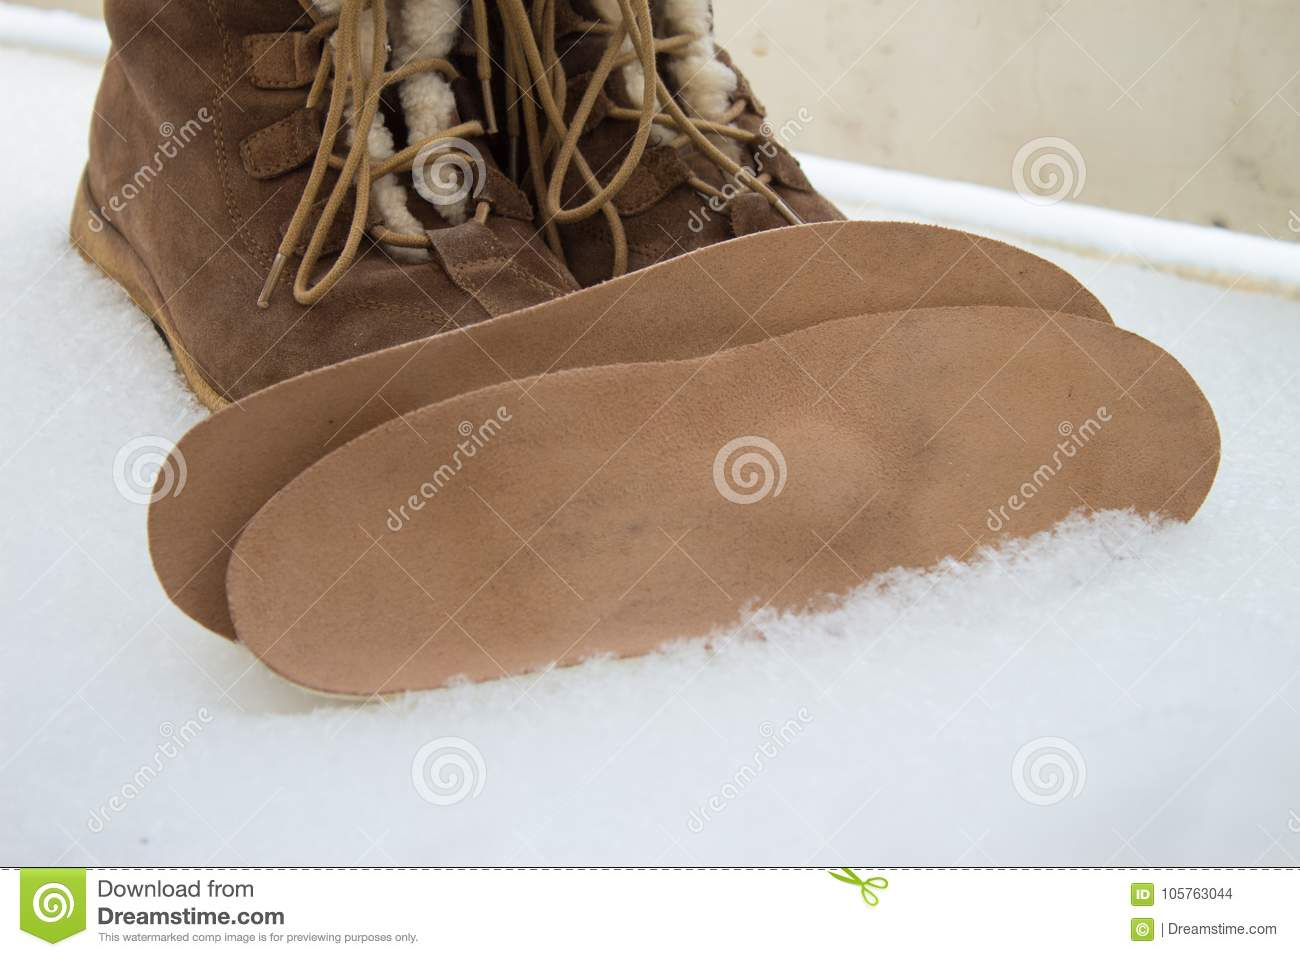 Warm brown shoes and orthopedic insoles. Winter background, foot